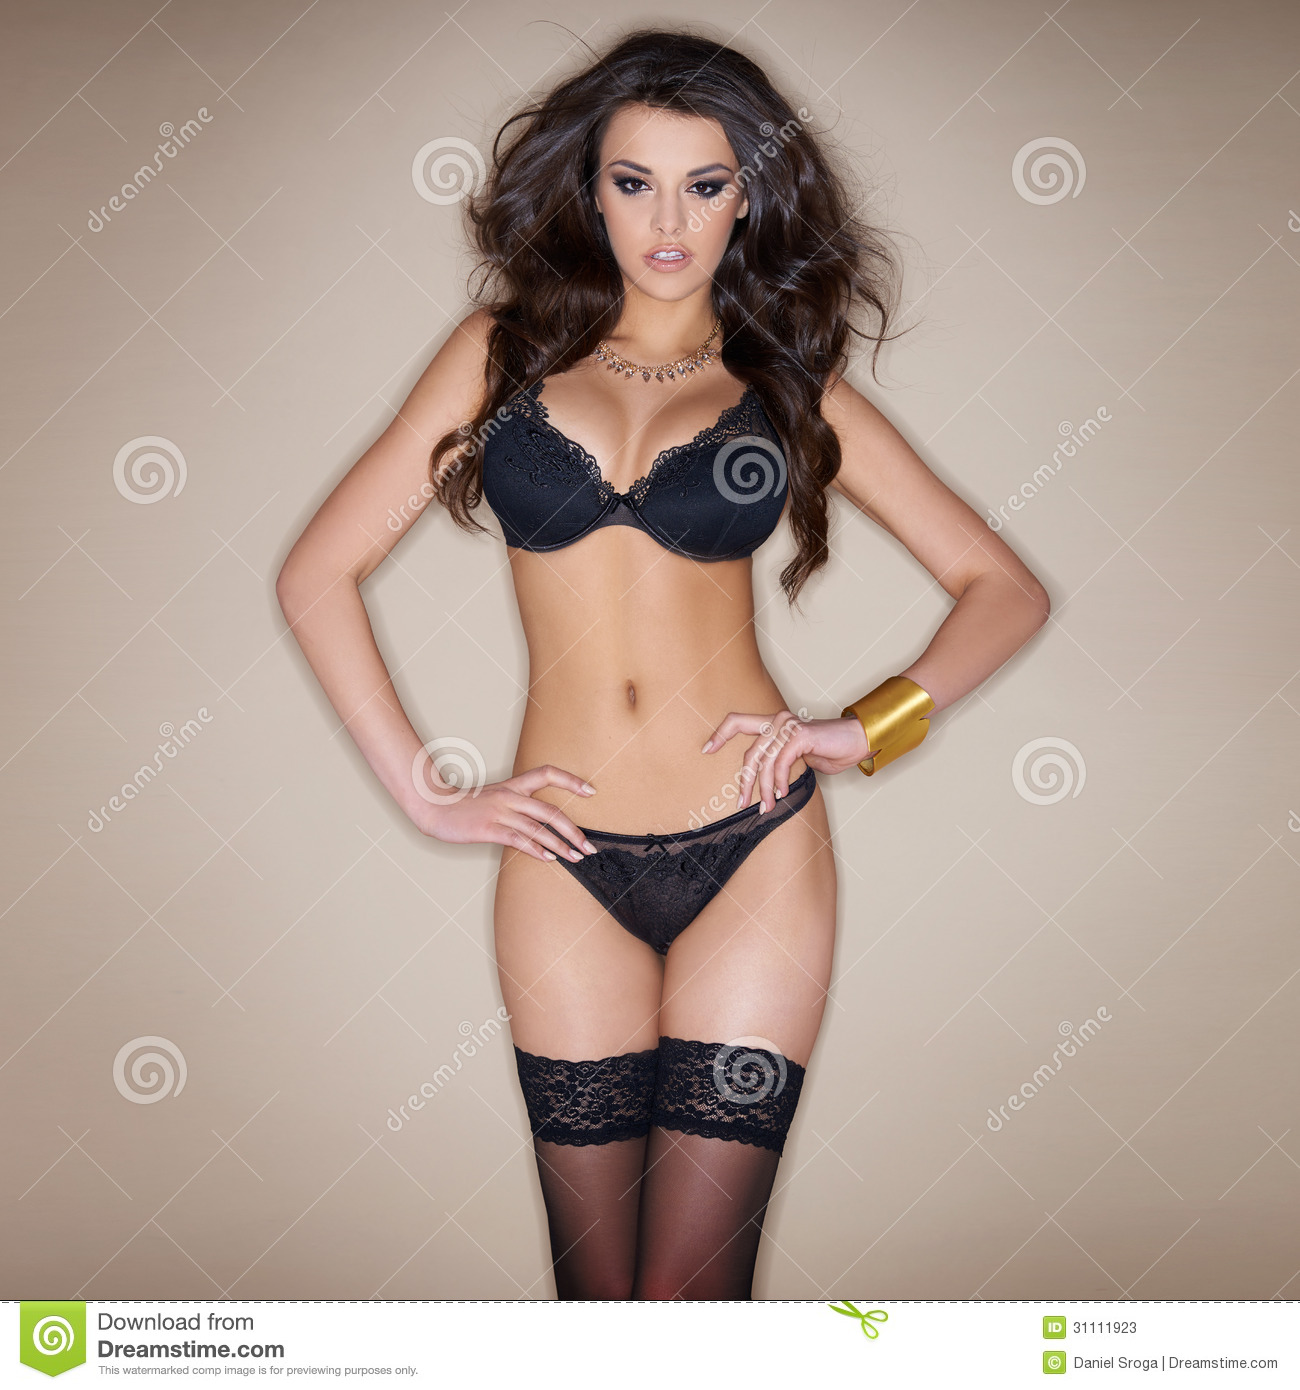 Dark Haired Woman Posing In Black Lingerie Stock Image - Image of ... 895a00ff7